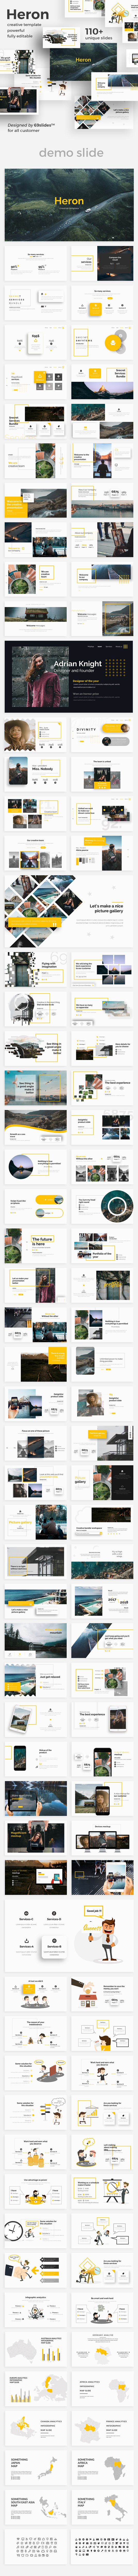 Heron Creative Keynote Template - Creative Keynote Templates